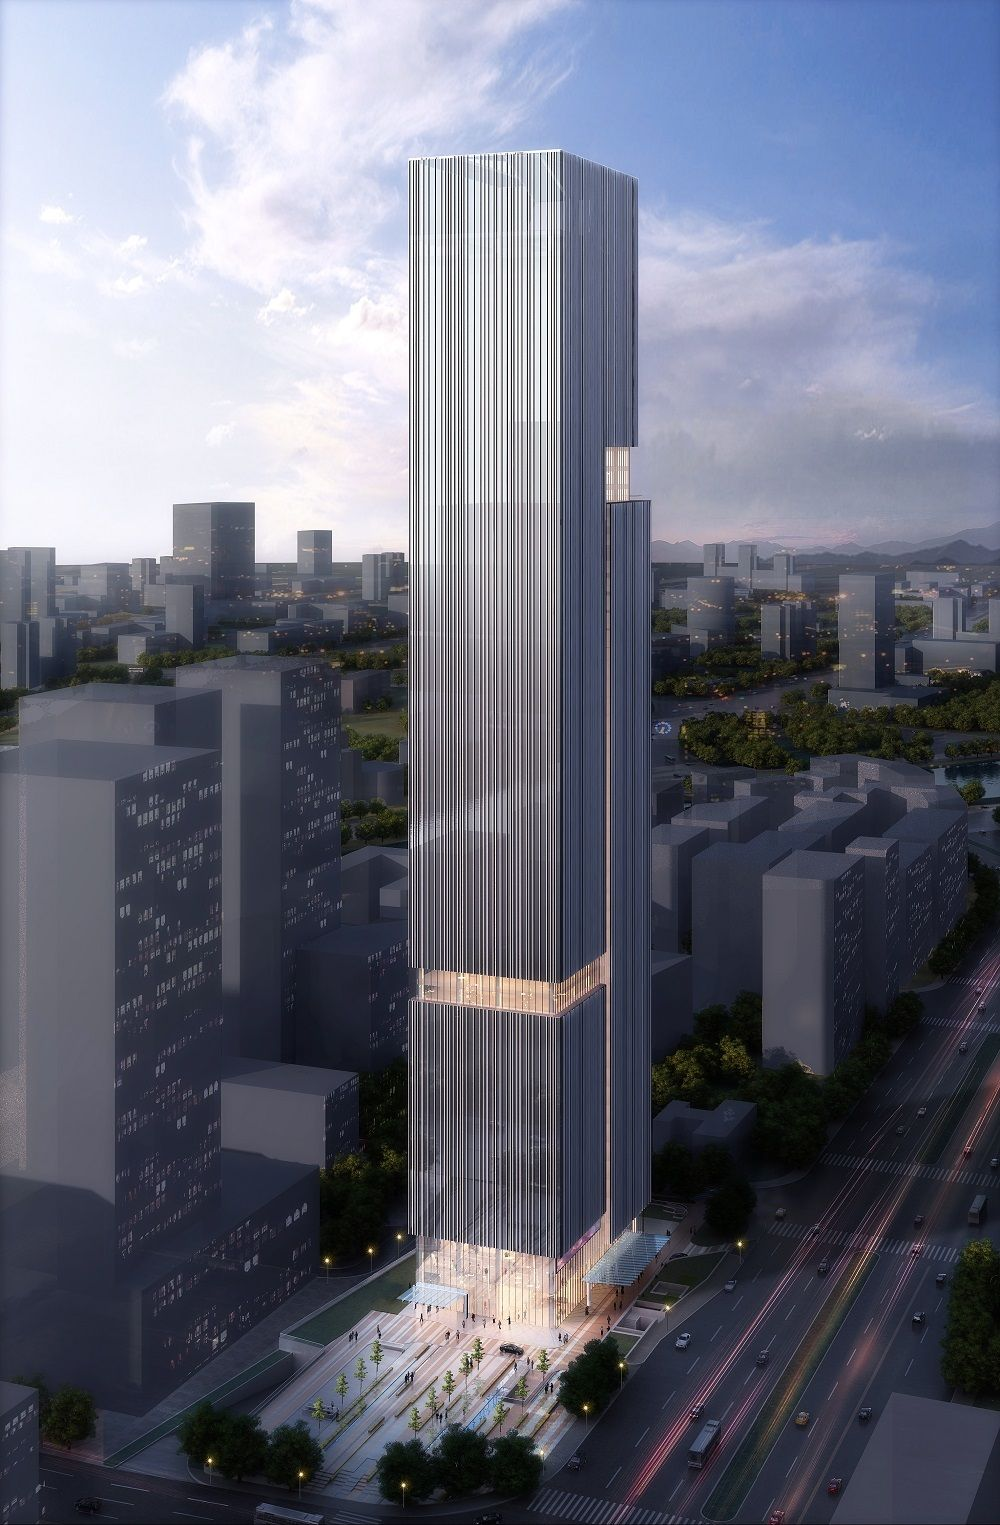 Bravo Pazhou unites two functions into one spectacular composition   Aedas   Archinect is part of Tower design - Bravo Pazhou unites two functions into one spectacular composition by Aedas